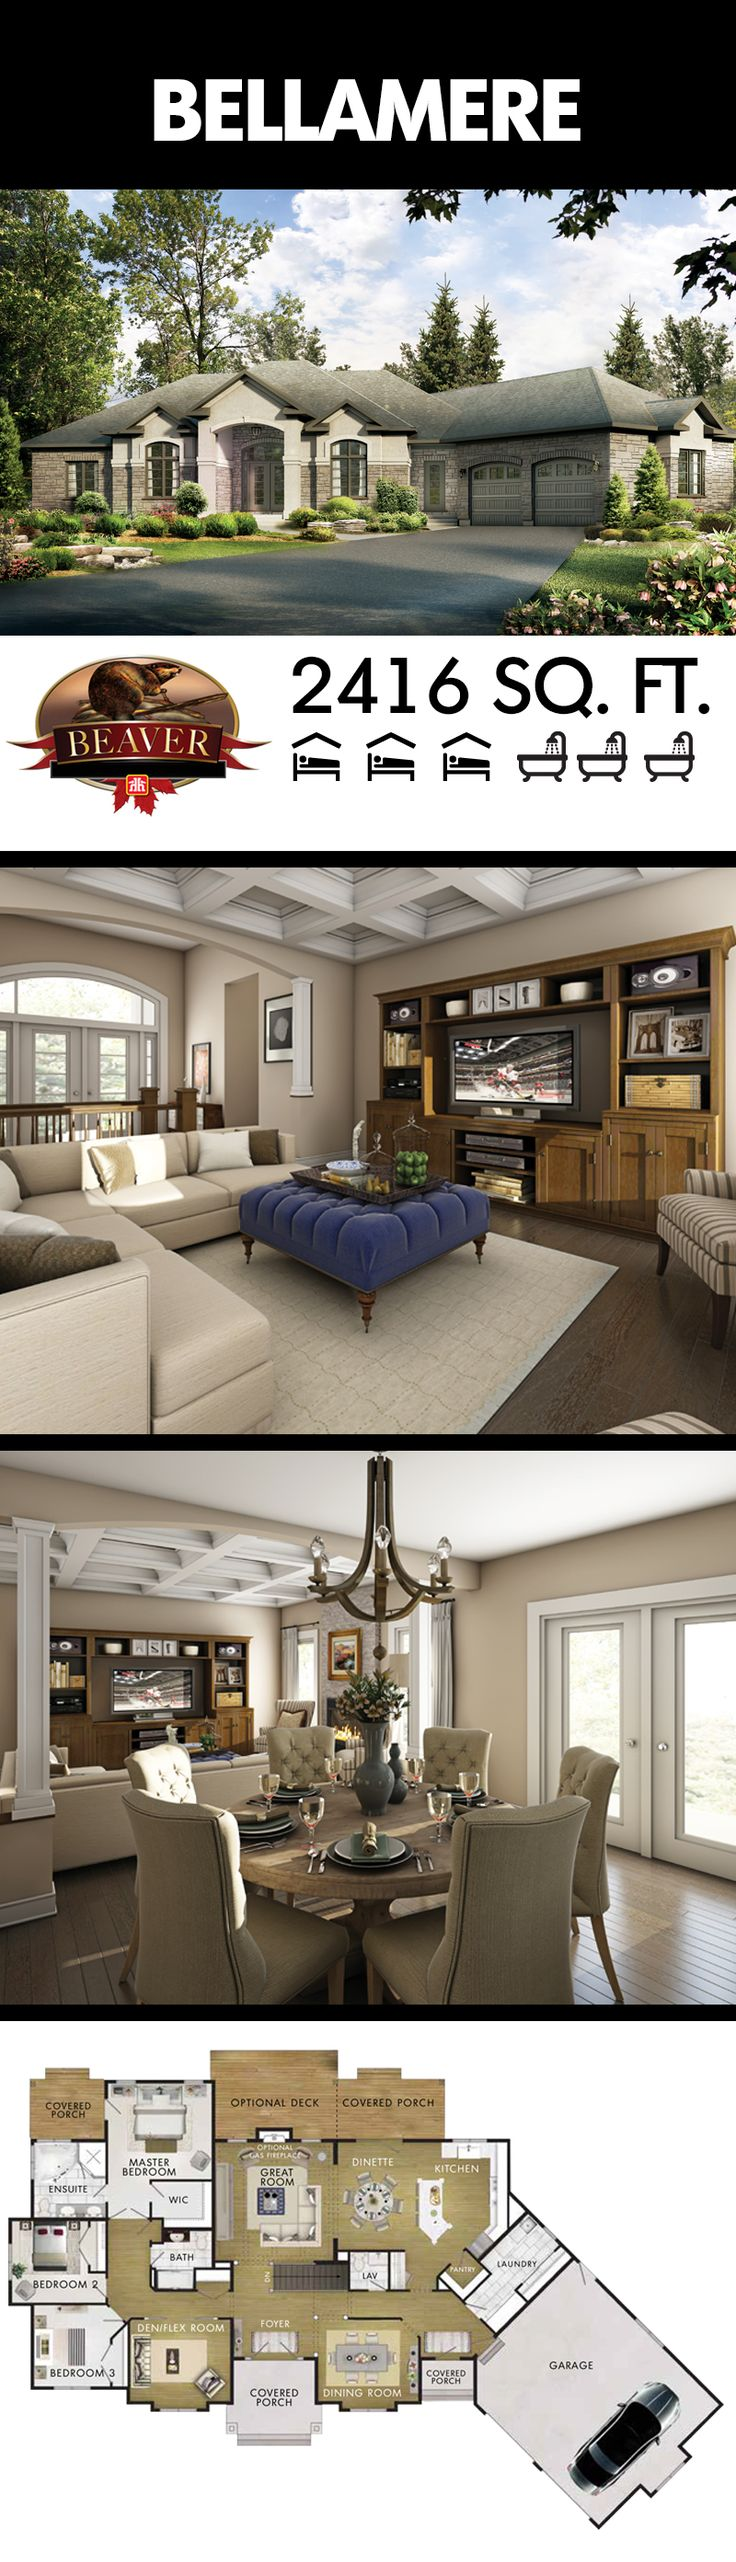 best 25 bungalow house design ideas on pinterest bungalow house the bellamere is an open concept executive style 3 1 bedroom bungalow armed bungalow decorbungalow house plansbungalow designshouse